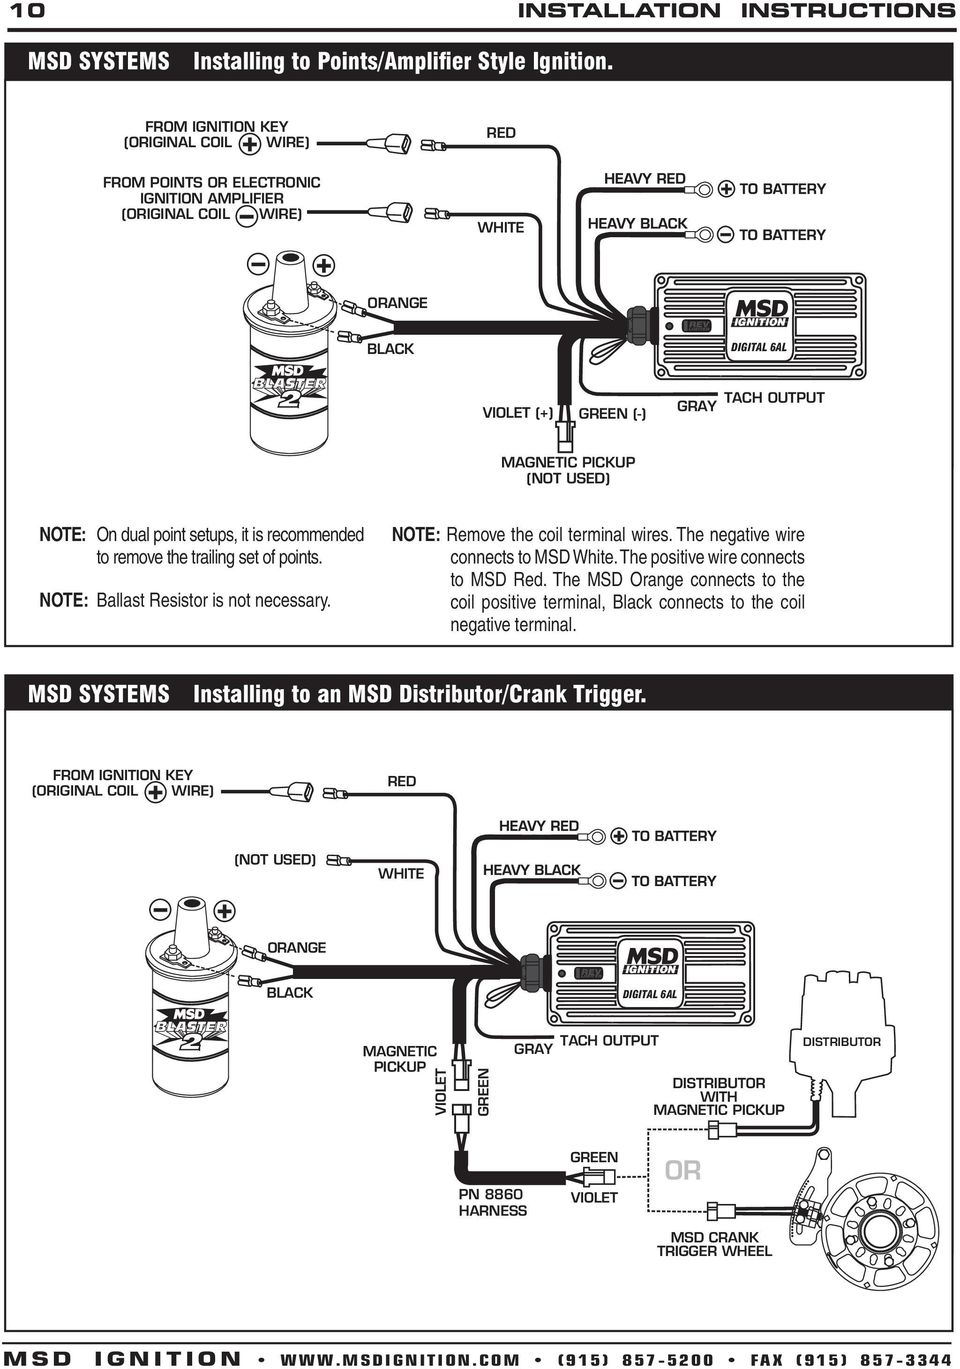 Msd Digital 6a And 6al Ignition Control Pn 6201 Pdf Chevy Distributor With Wiring Points Note Ballast Resistor Is Not Necessary Remove The Coil Terminal